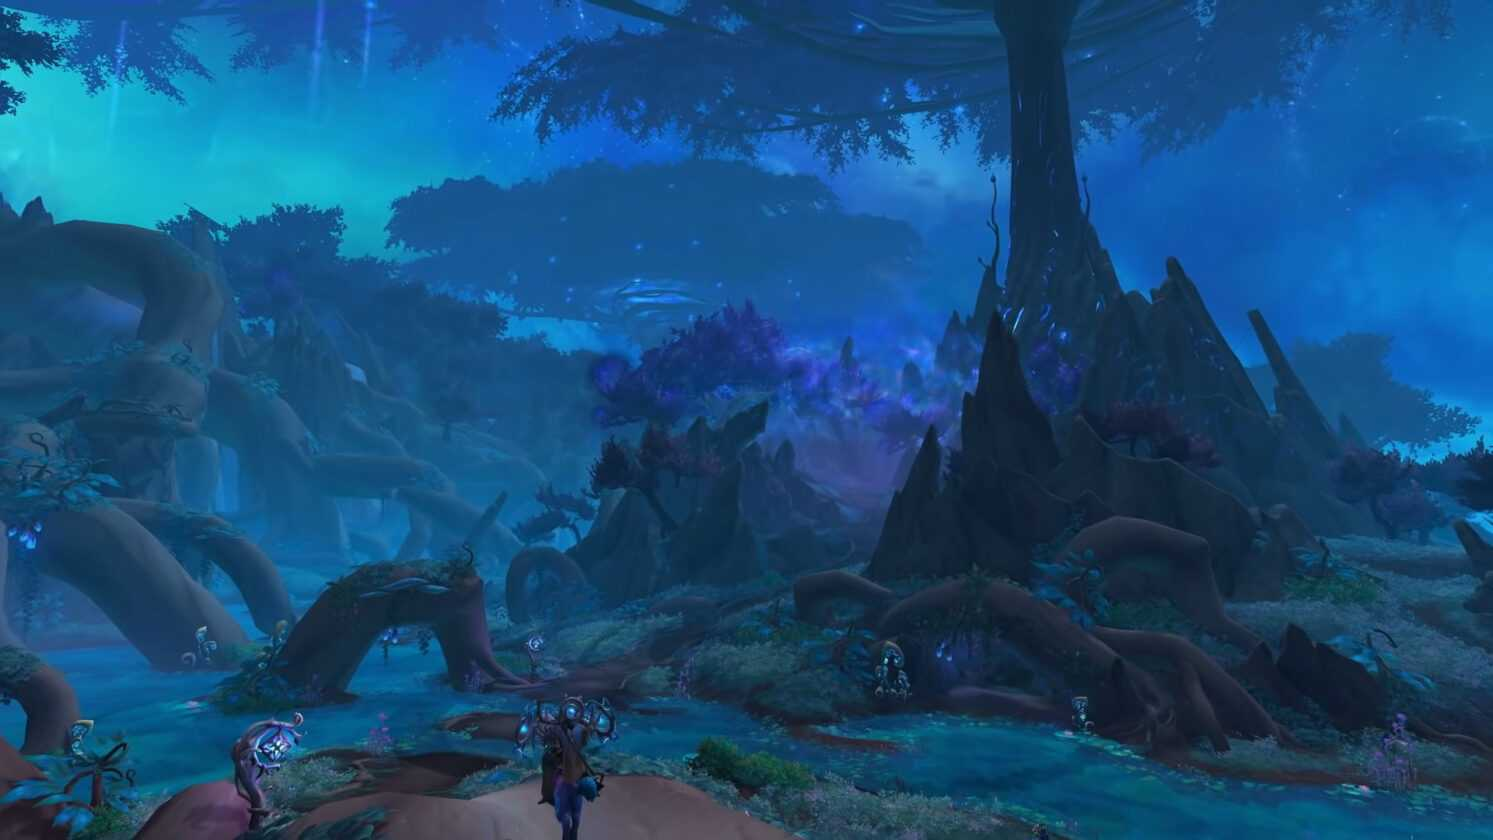 Weekly World Of Warcraft: Shadowlands Reset Will Bring First Appearance Of Heavily Nerfed Mythic+ Affix, Explosive